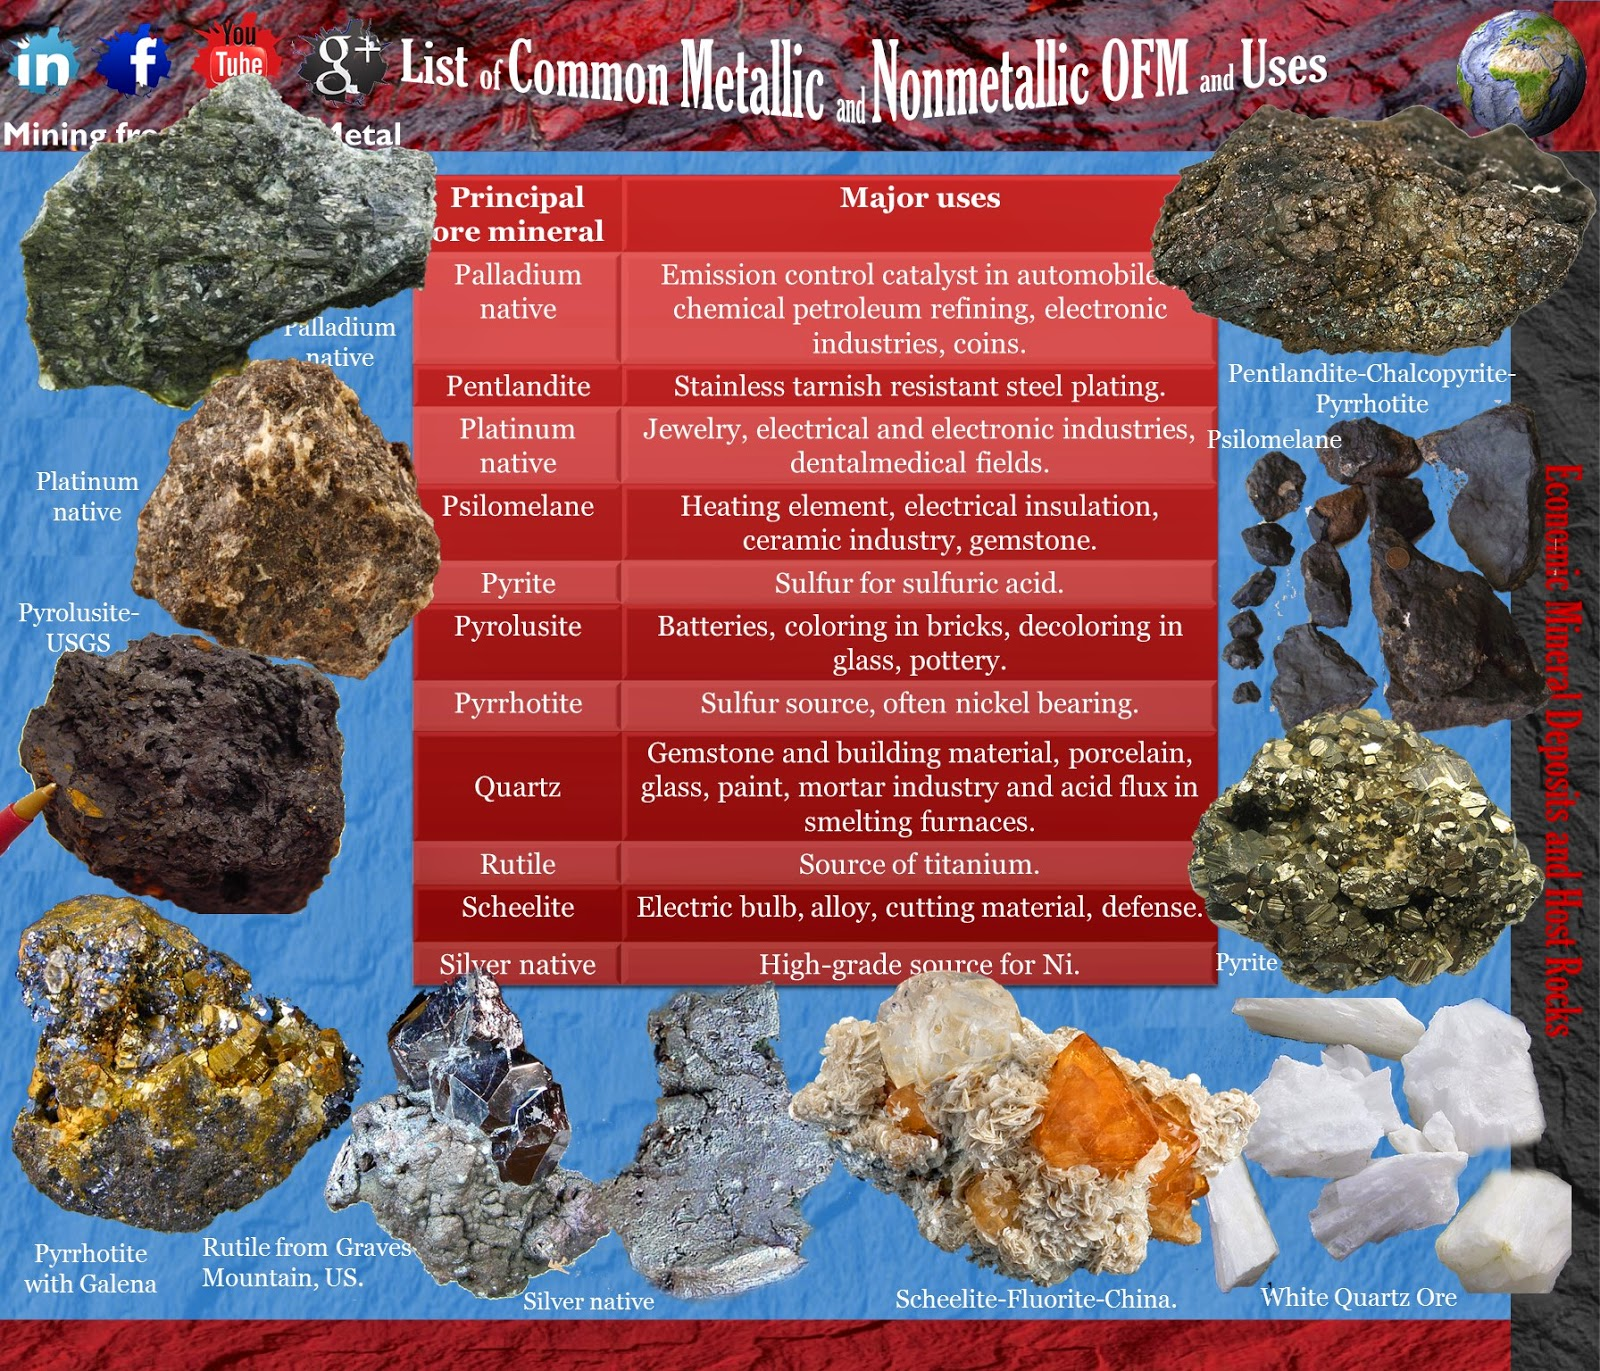 List of Common Metallic and Nonmetallic OFM and Uses 4